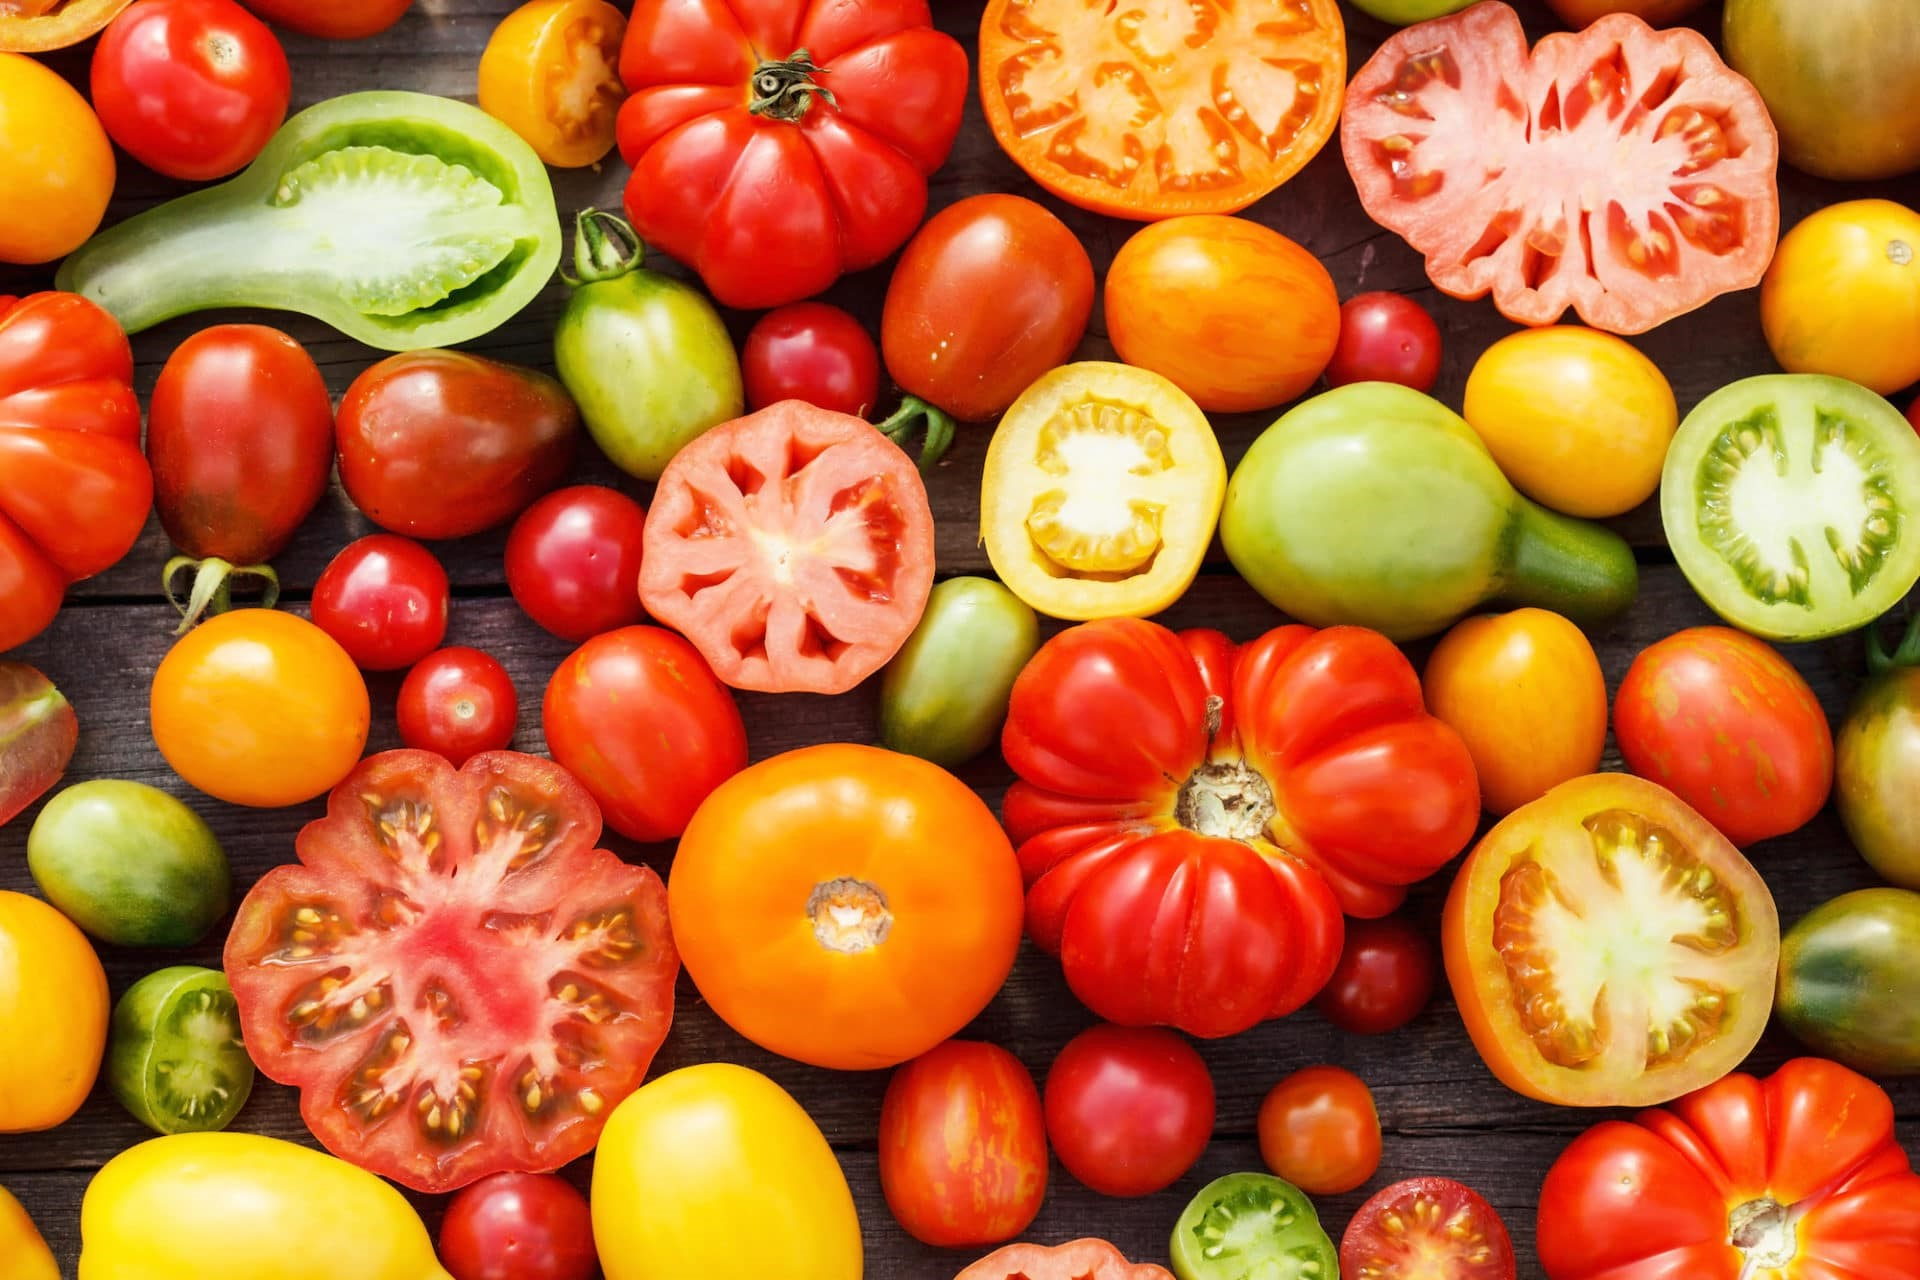 Tomatoes | 10 Foods That Treat Skin Conditions | Her Beauty